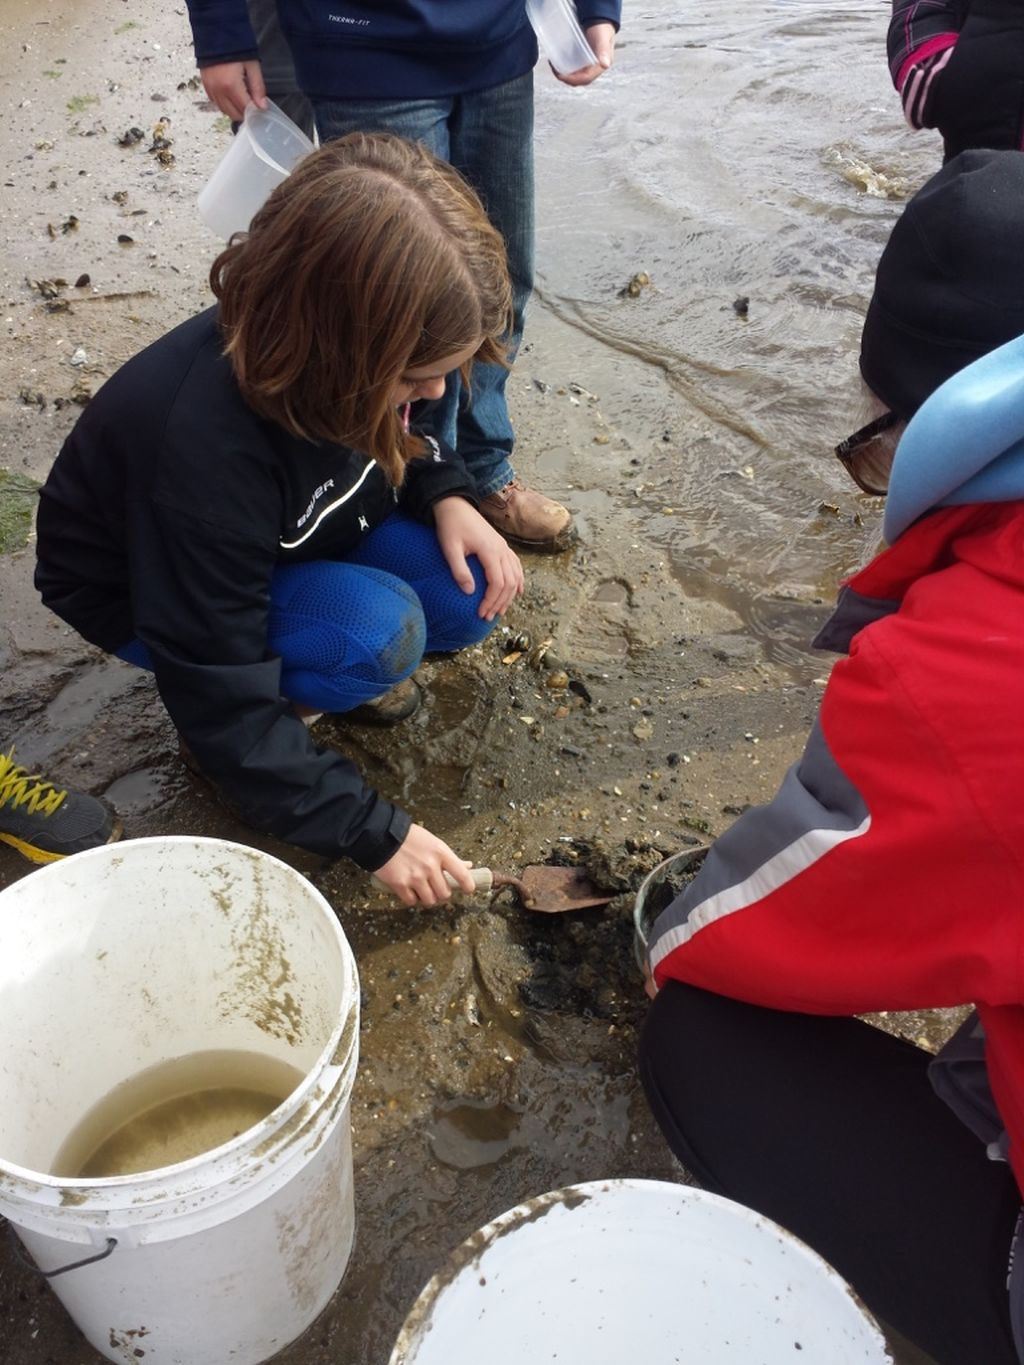 Carefully collecting mud snails at Herring River (photo by Sheila Hoogeboom).